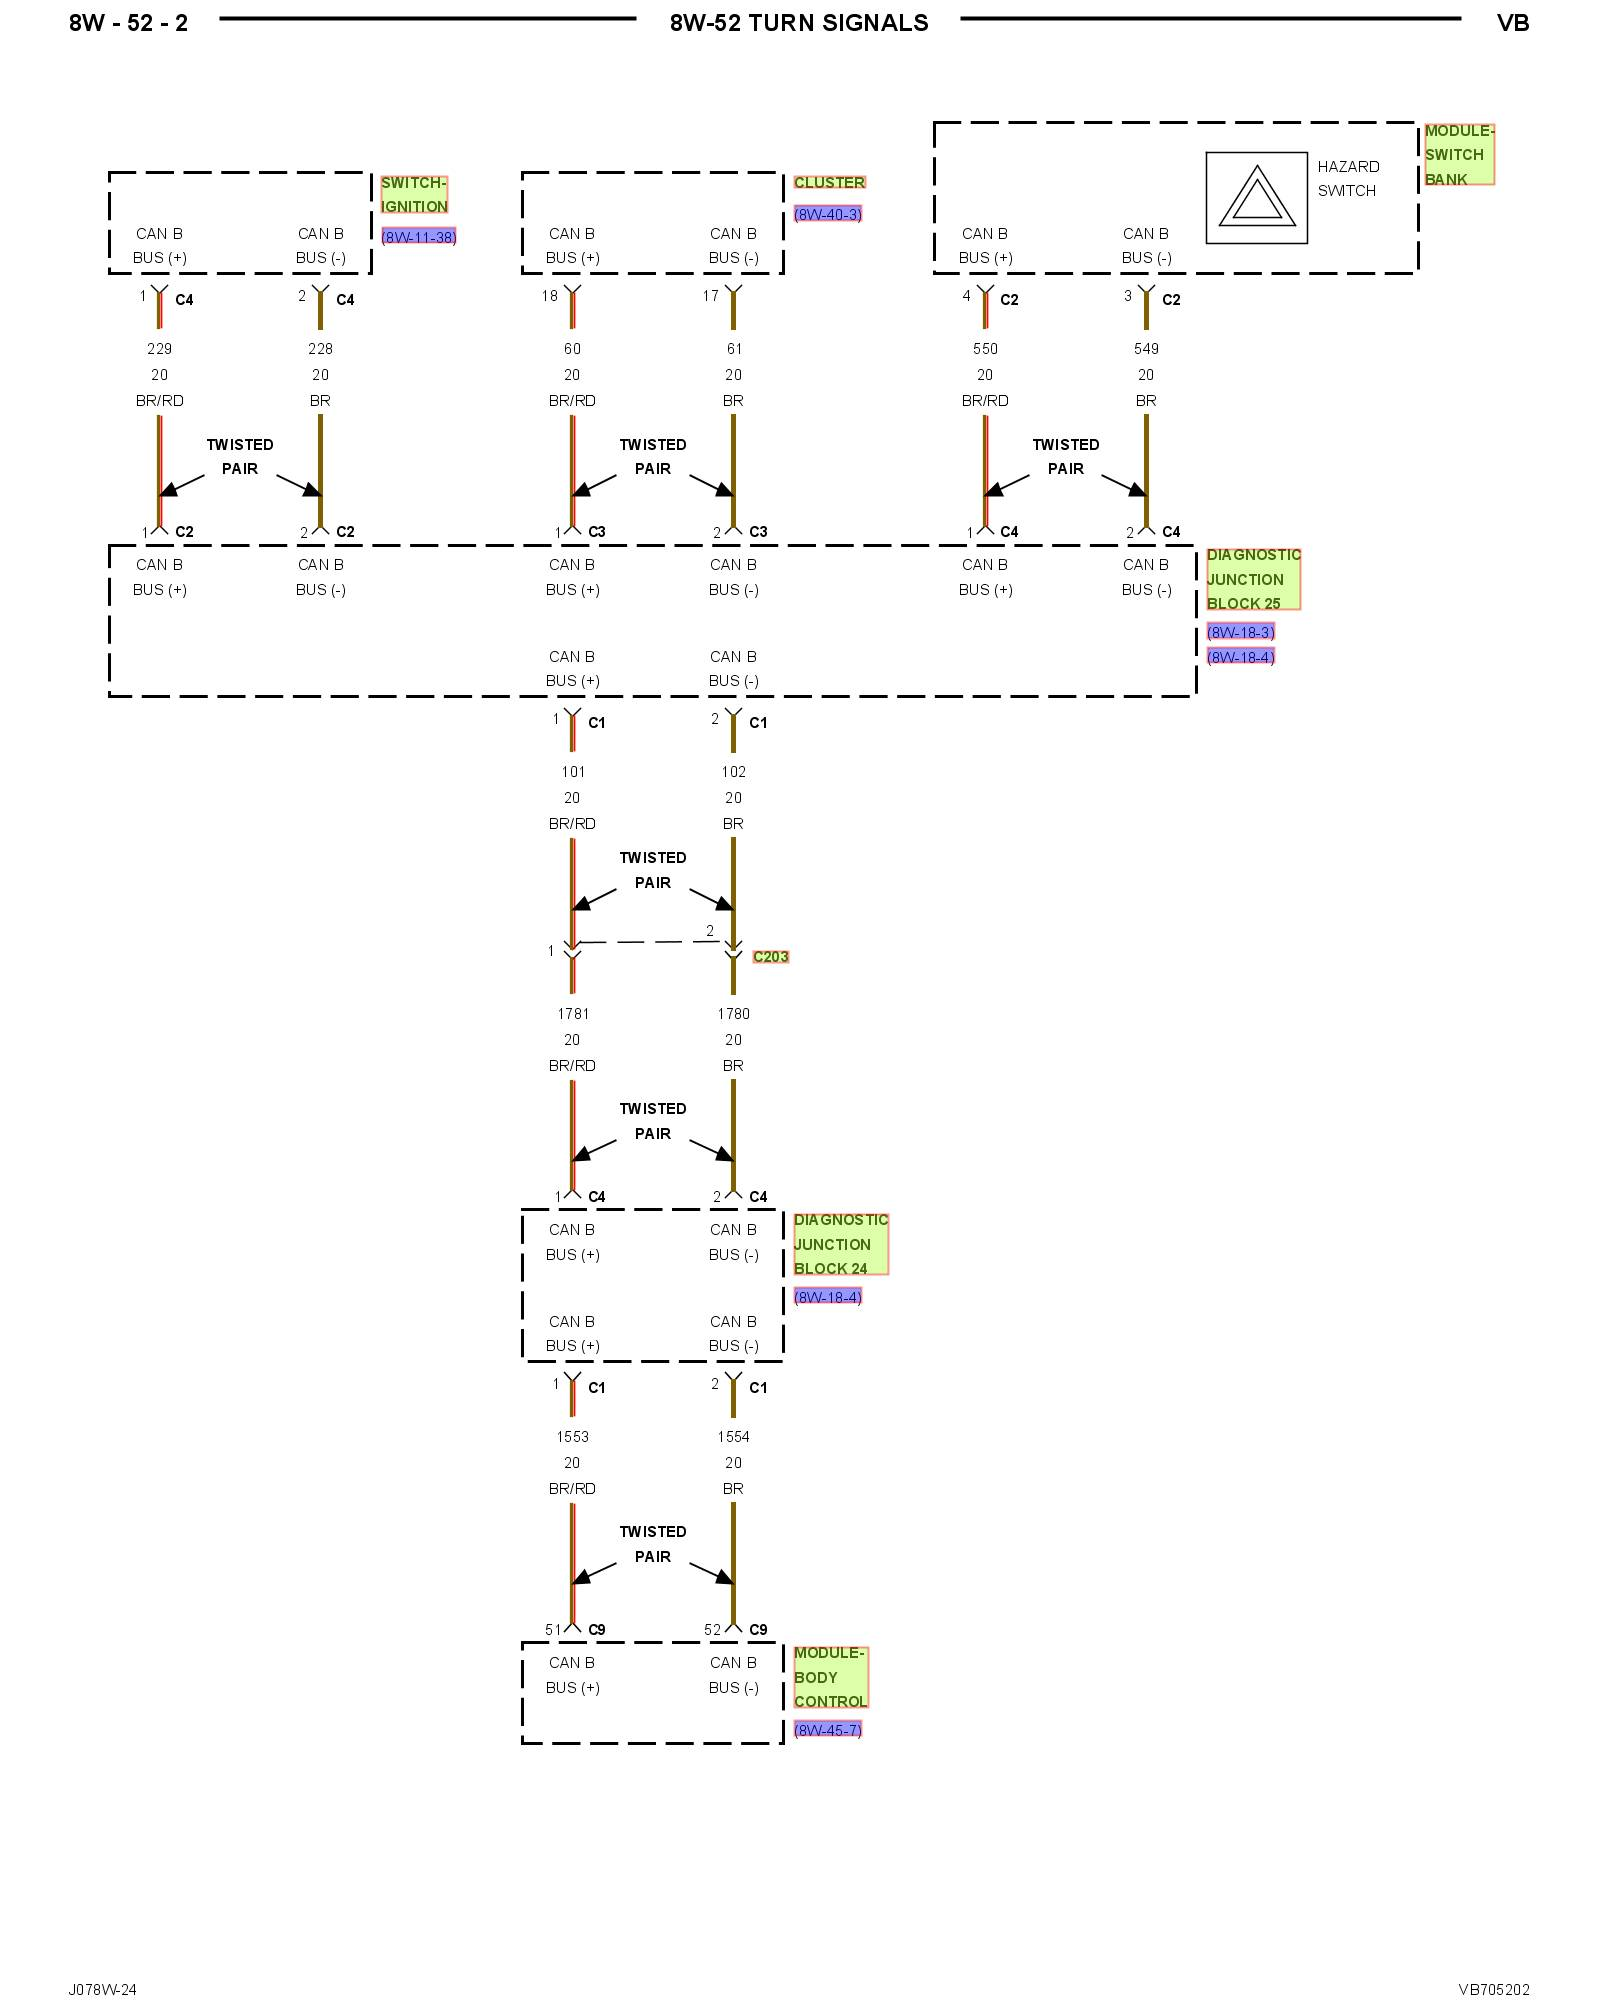 I Need Wiring Diagram For 2008 Dodge Sprinter 2500 Van